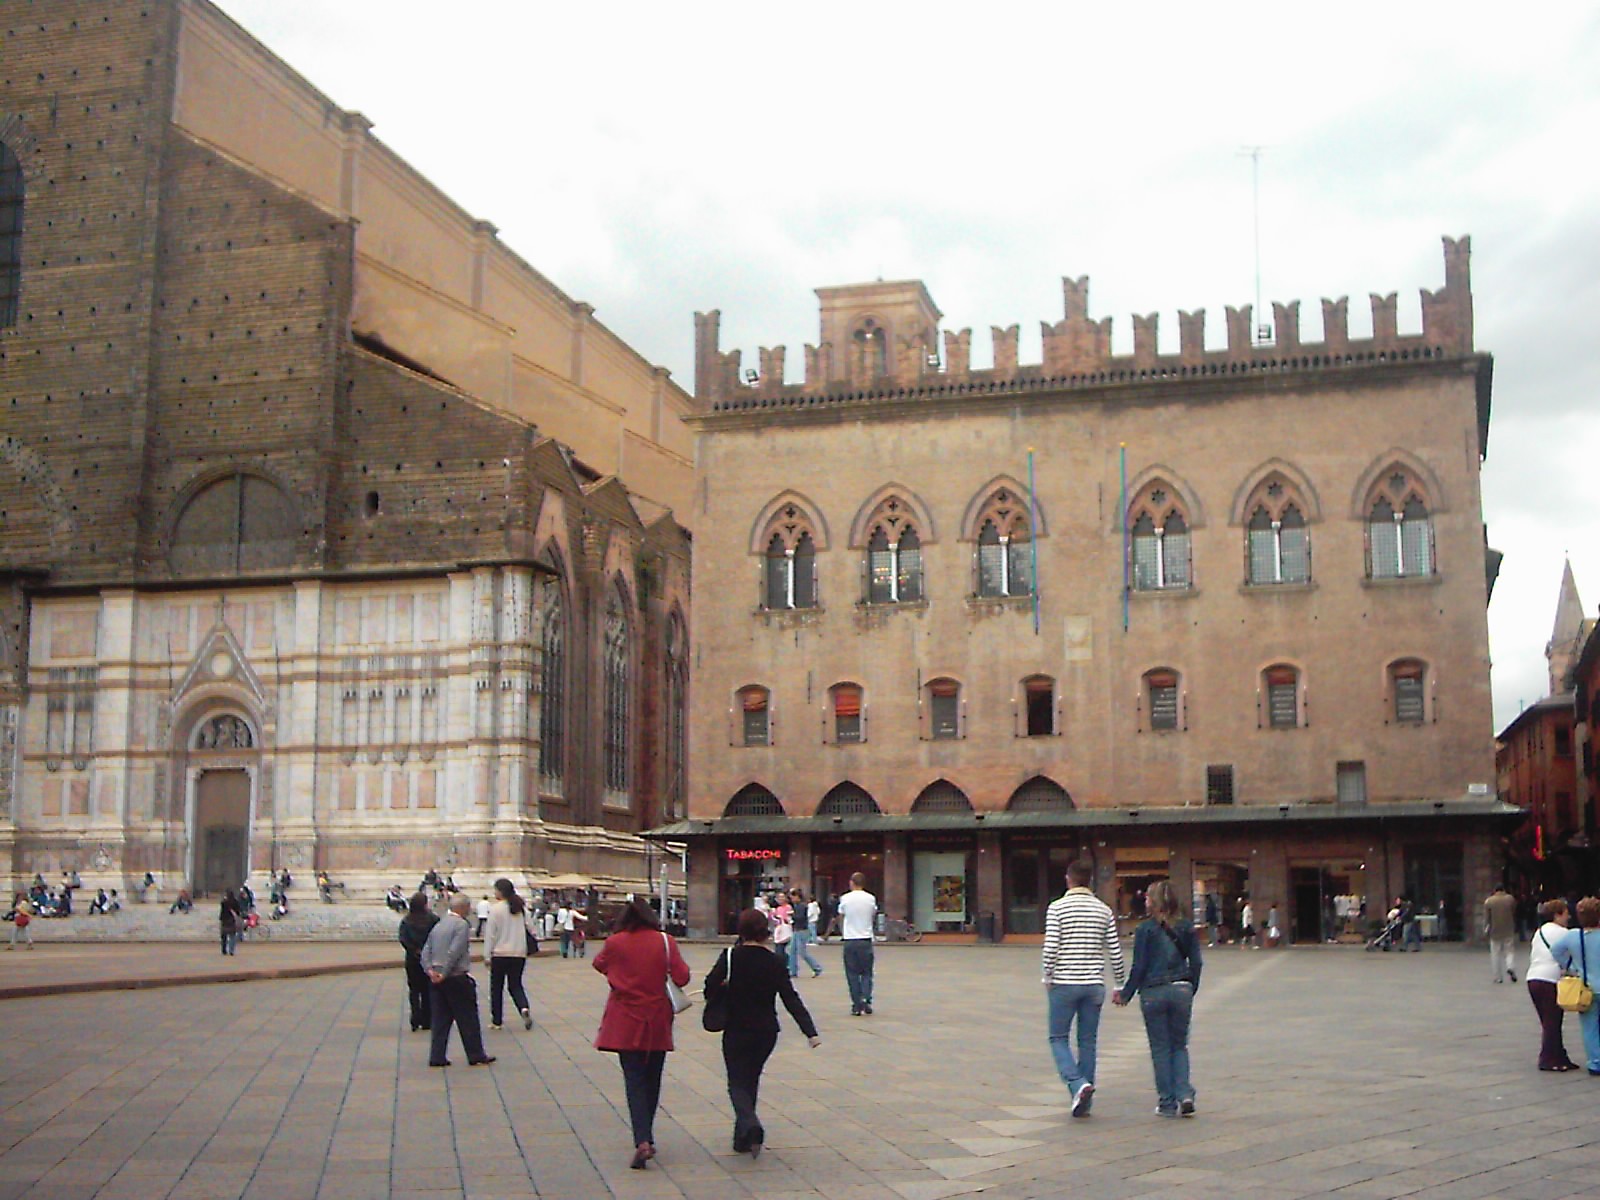 c 2 codice catastale bologna - photo#10